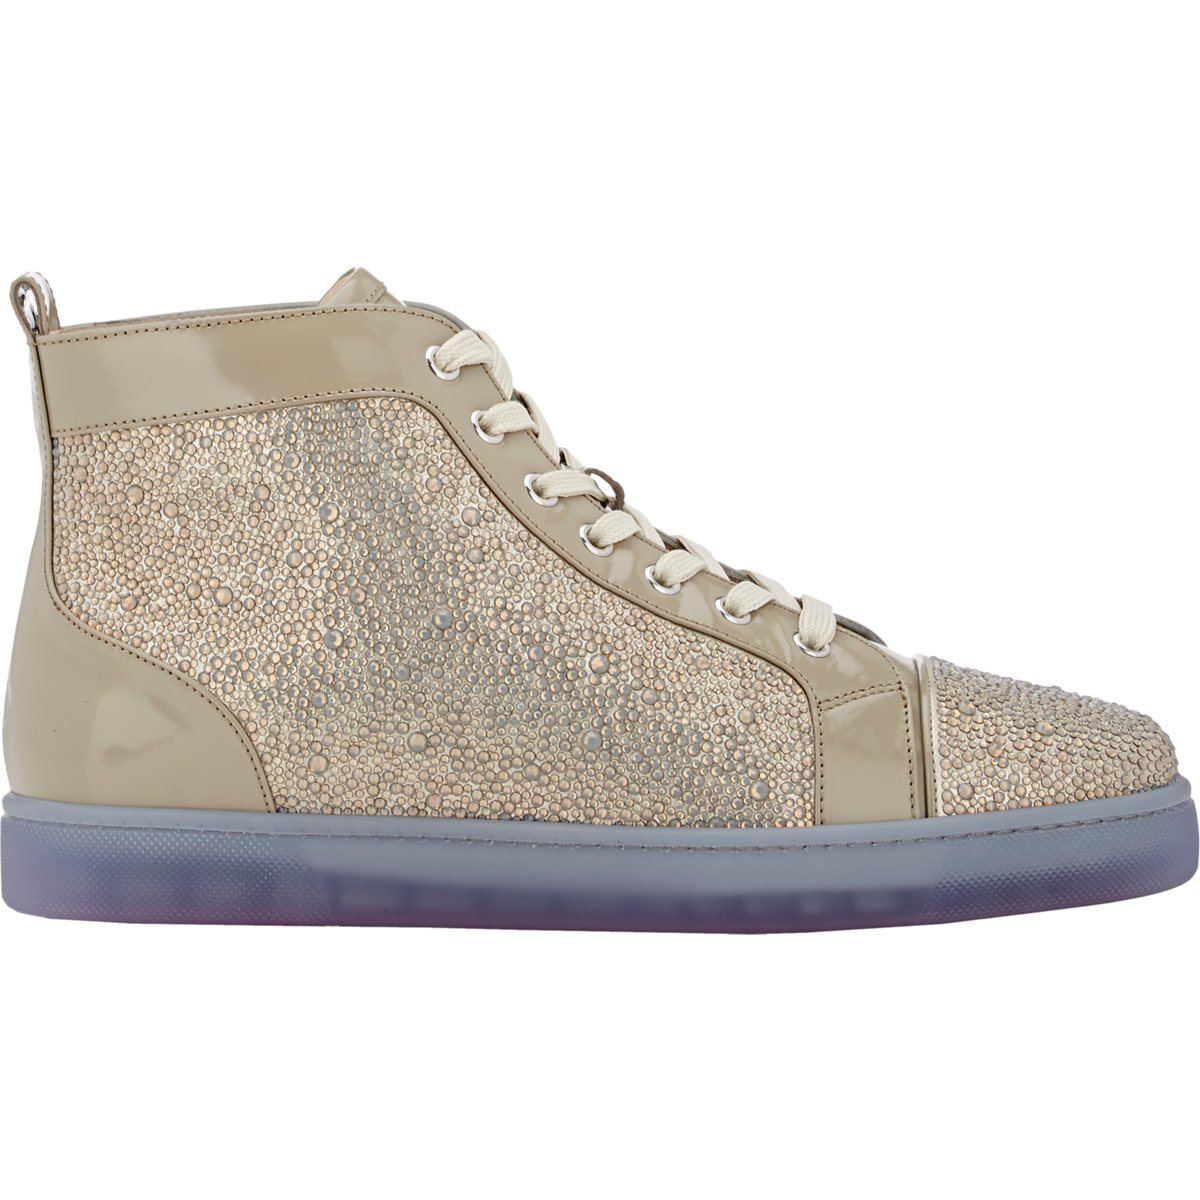 0af313bc0a9e Lyst - Christian Louboutin Louis Crystal-Embellished High-Top ...